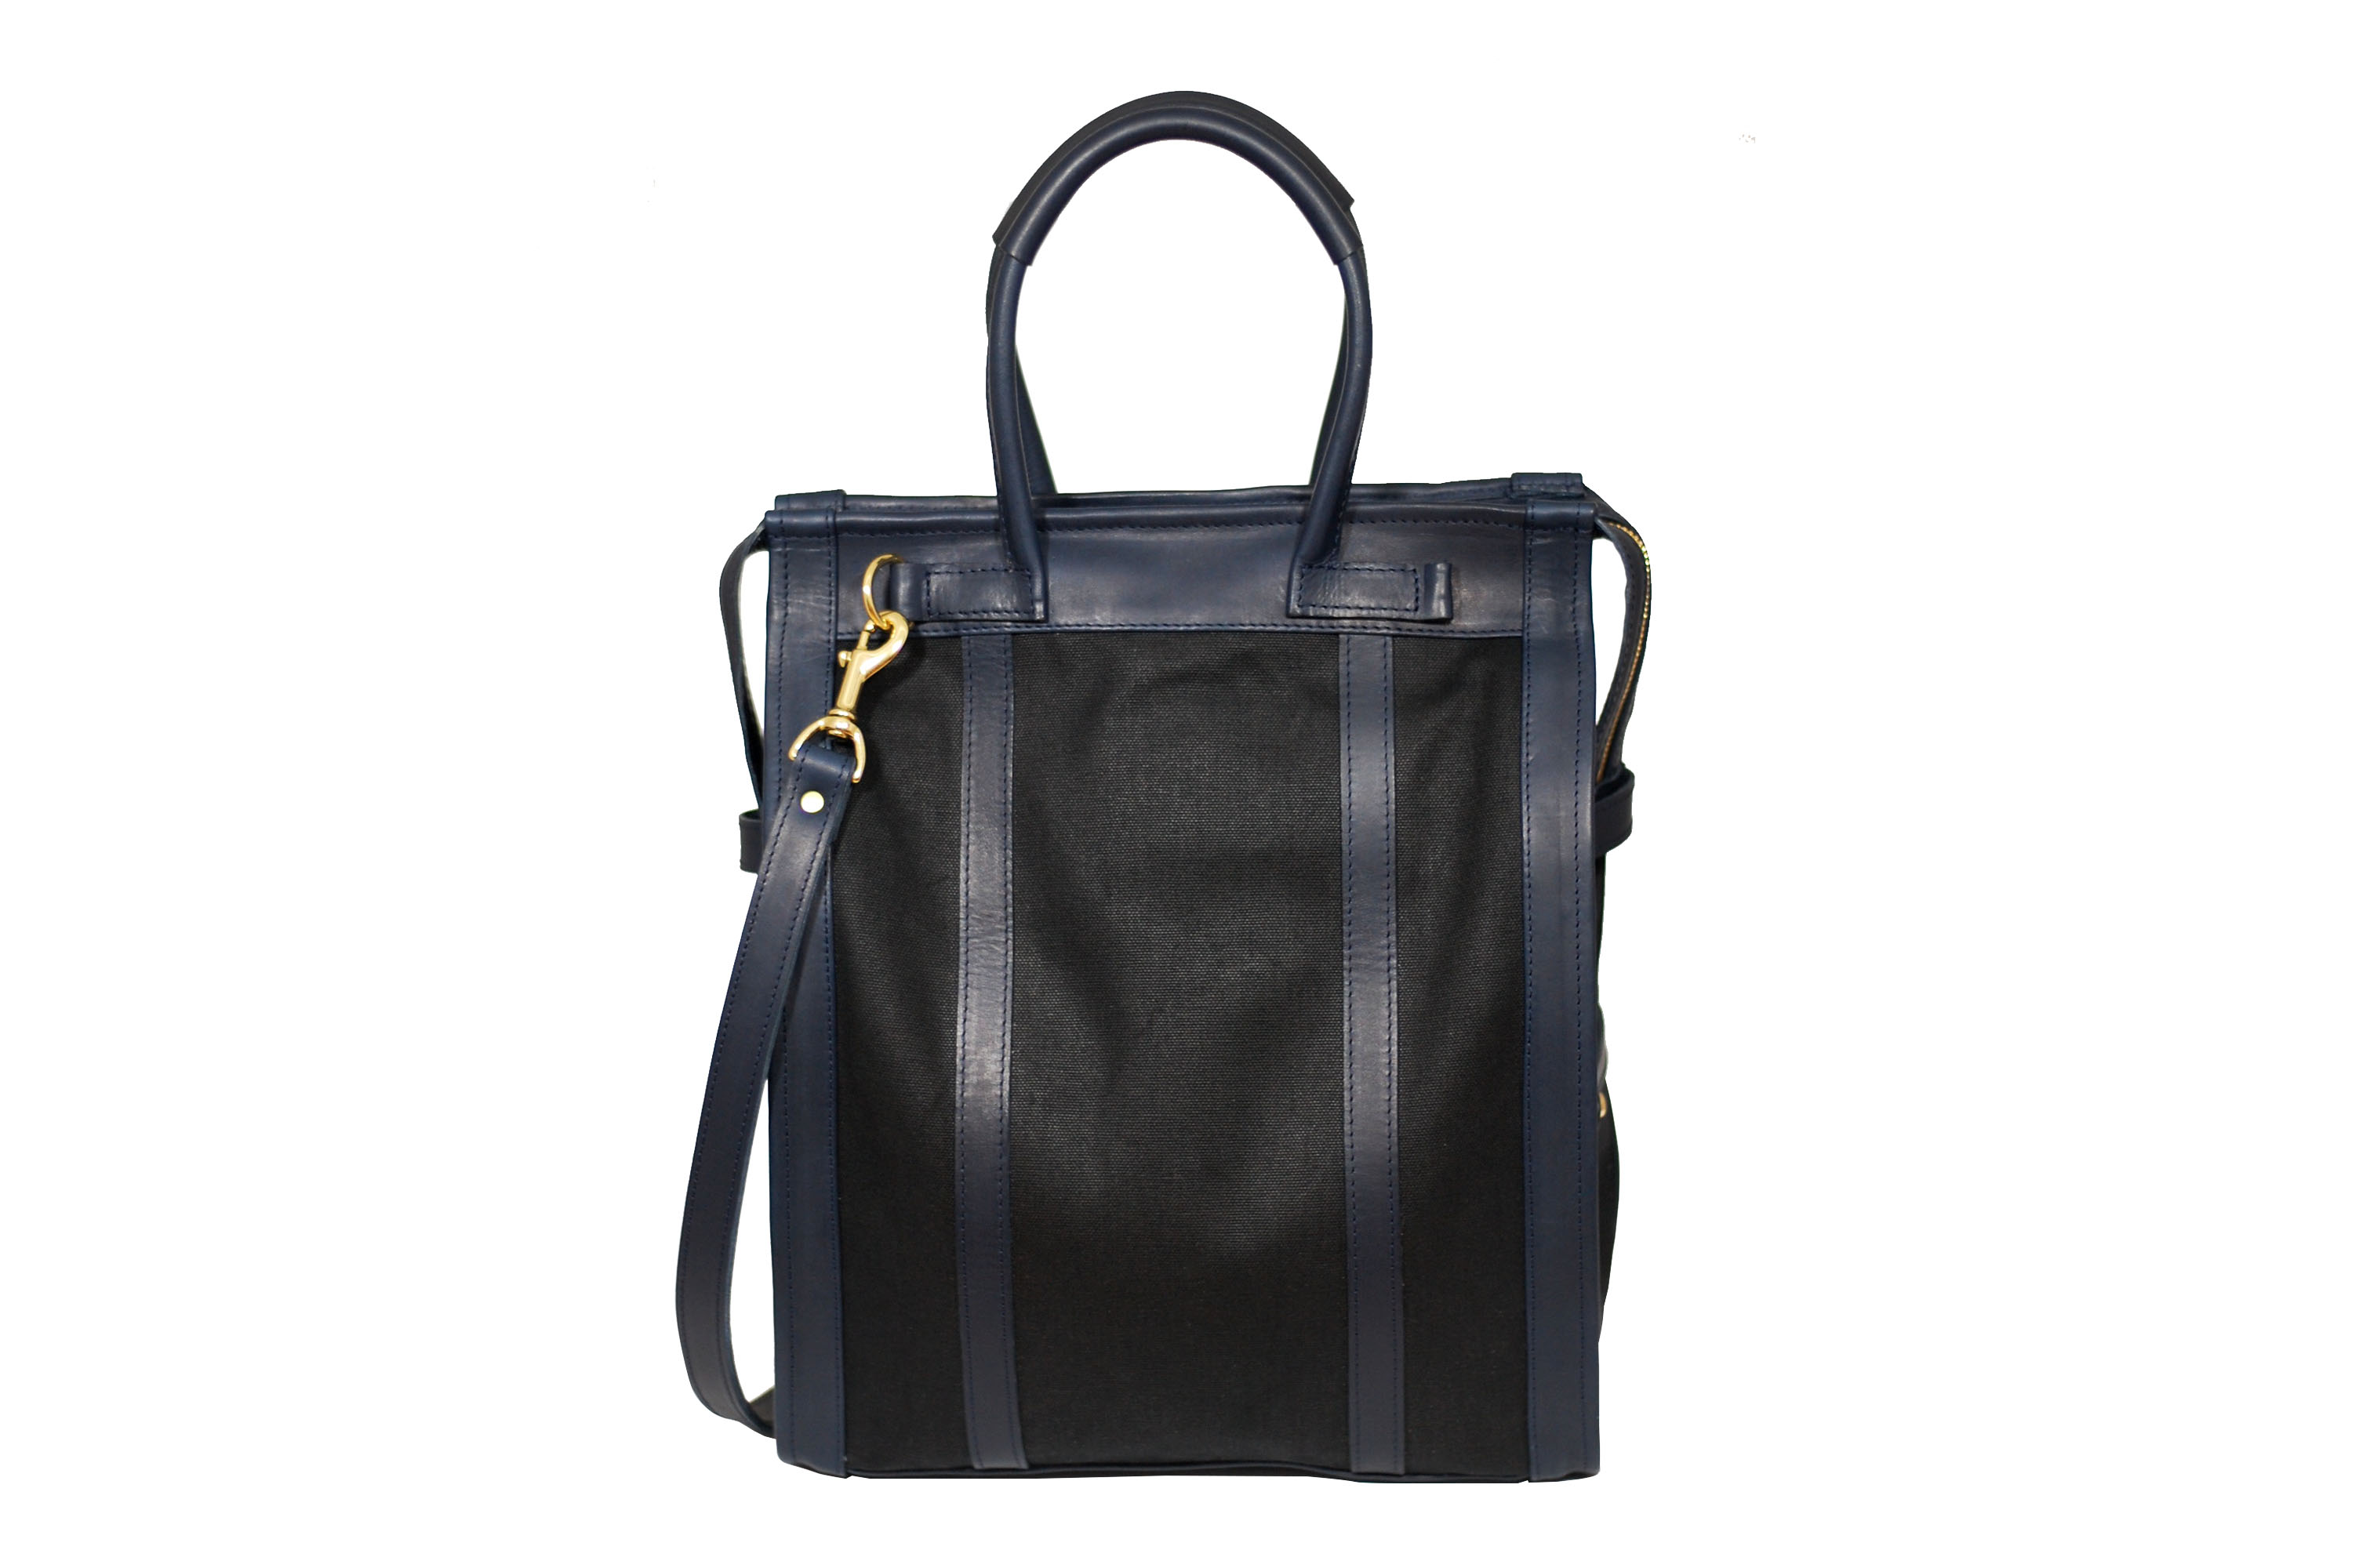 Mahiout field companion bag, luxury designer bag